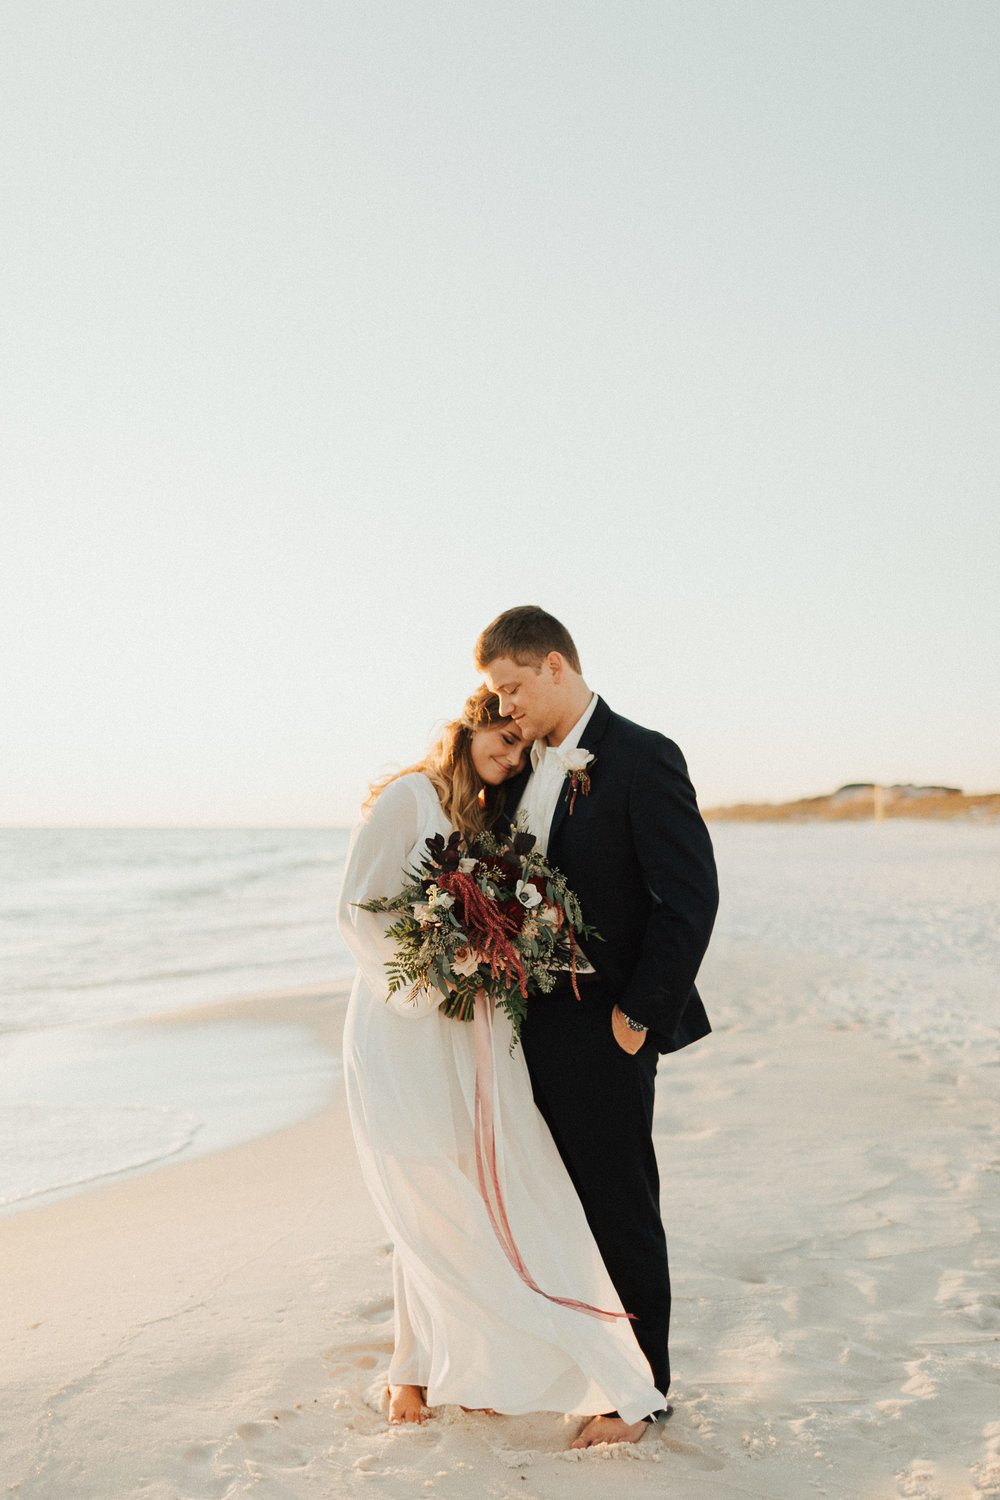 Kayla Nicole Photography, Rosemary Beach Elopement, 30a Photographer